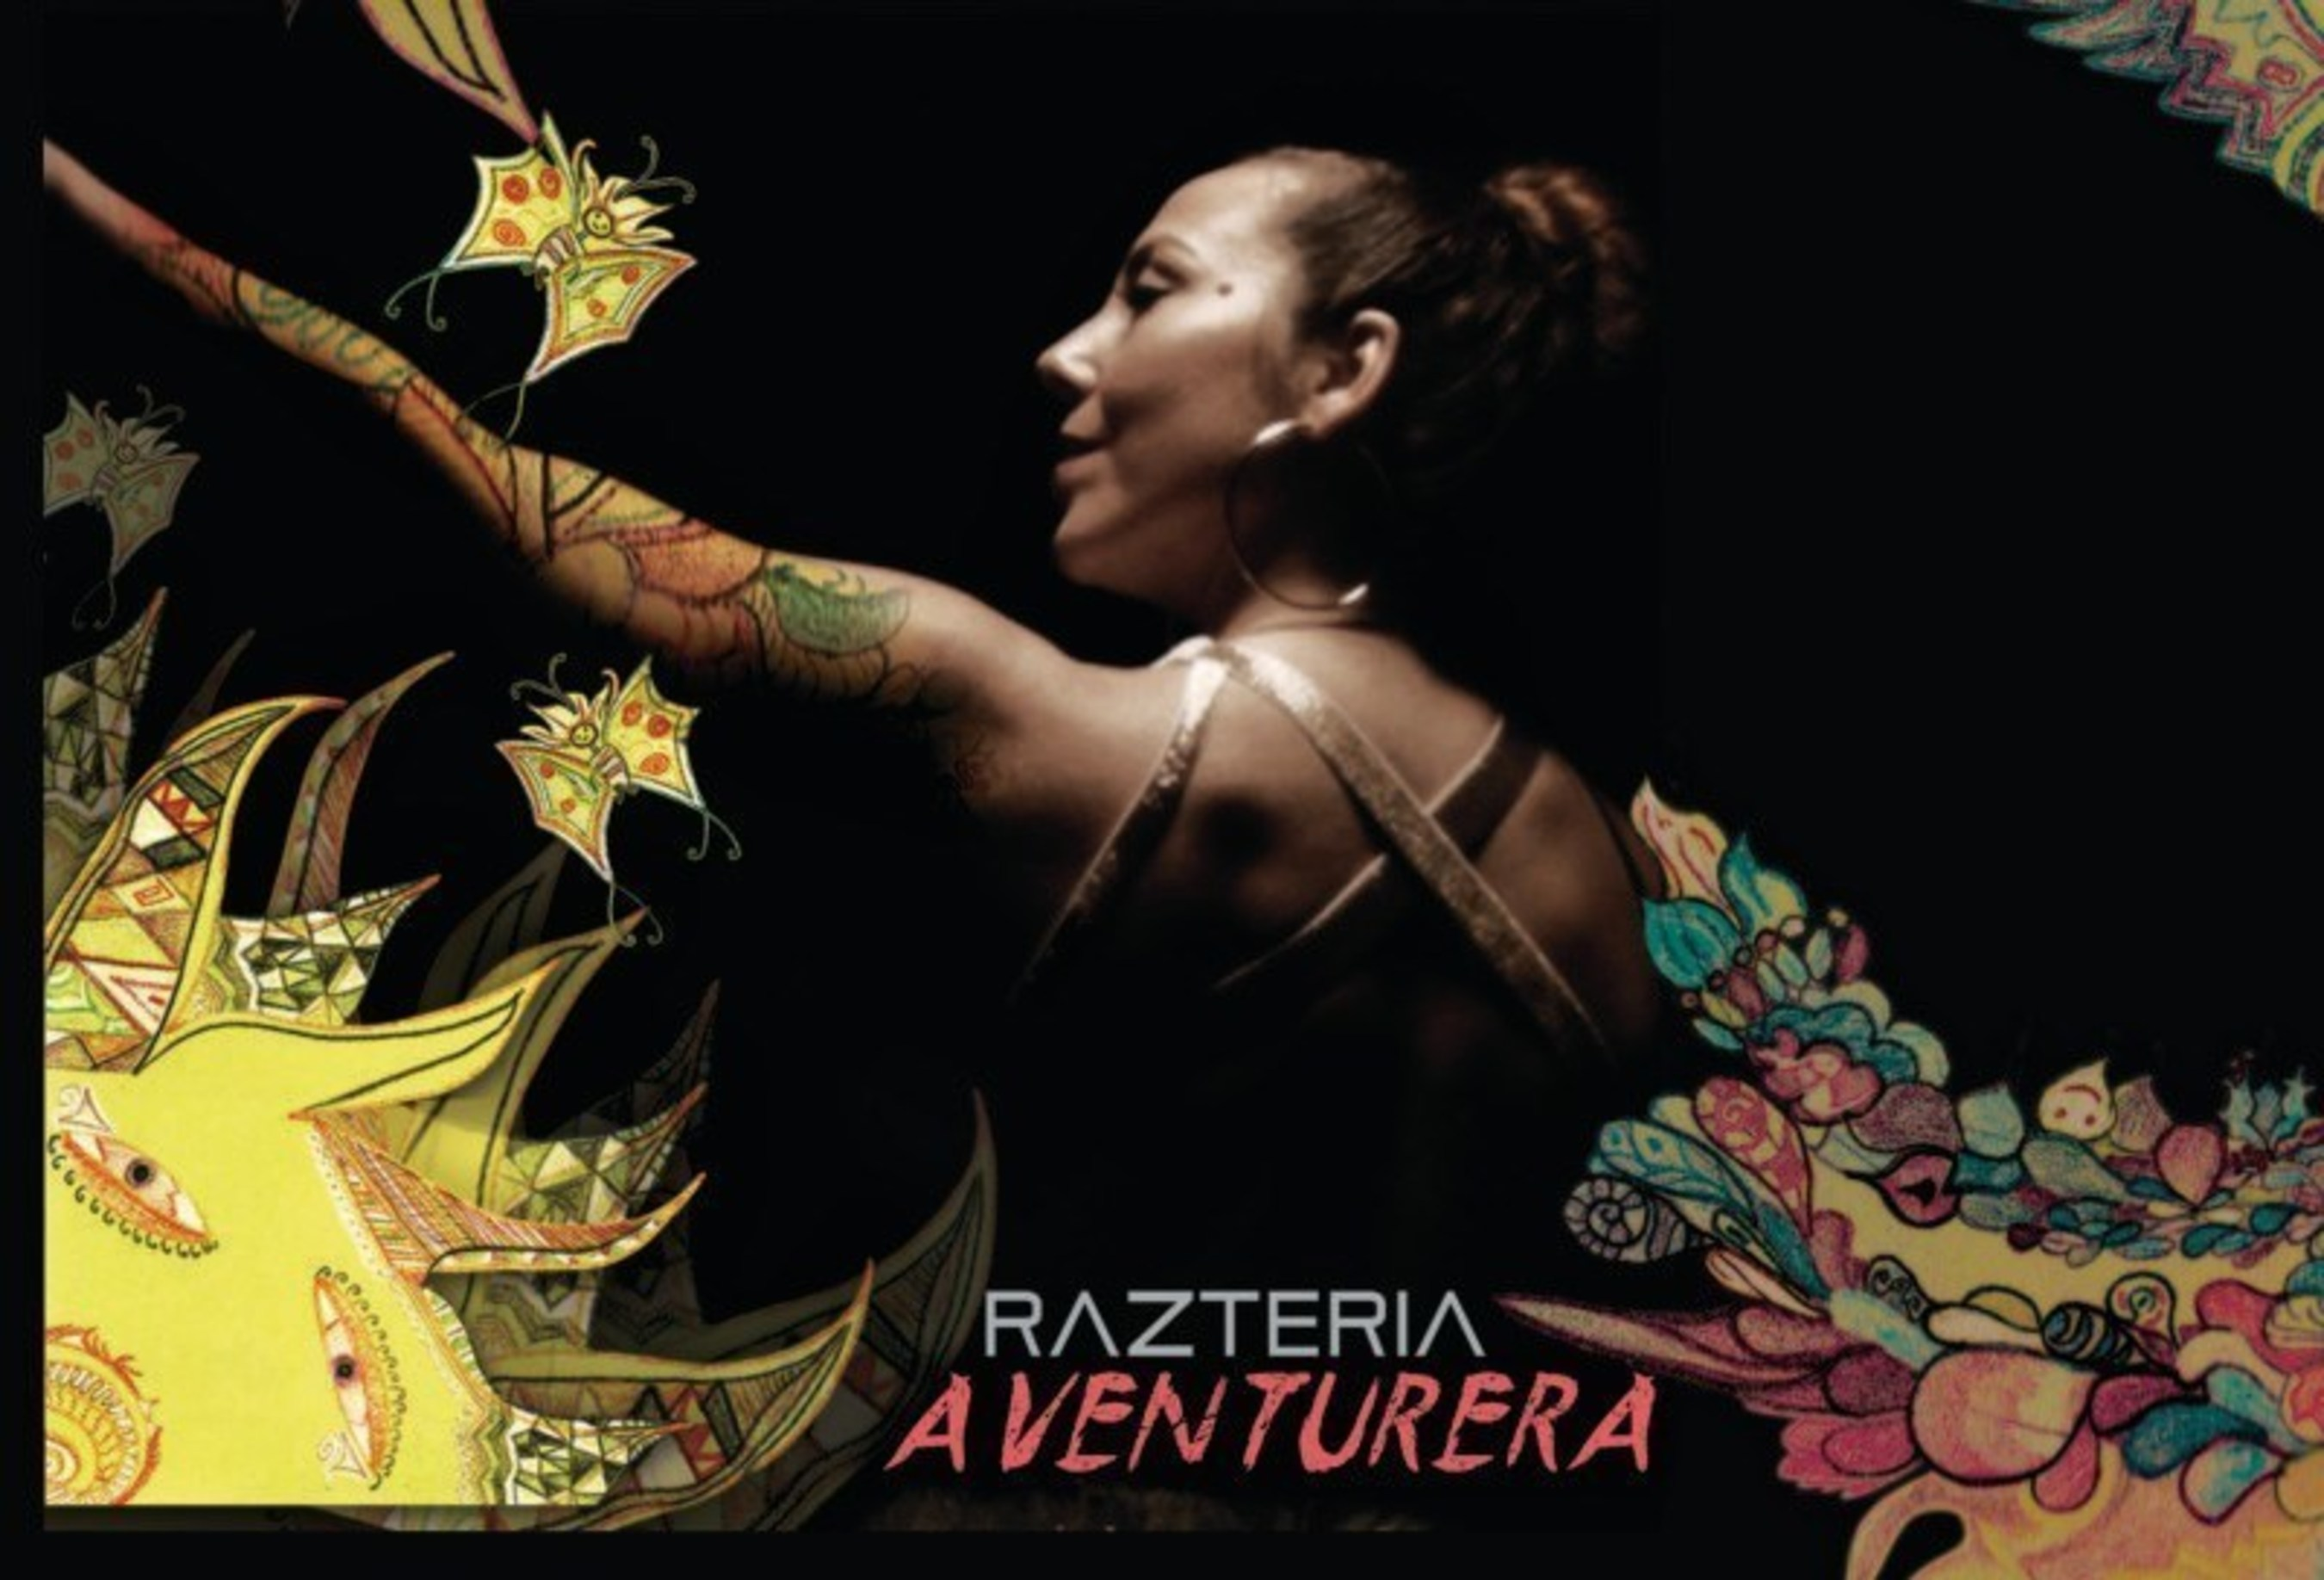 33 days till spring, Razteria seeks to raise $33,000 using Kickstarter to fund 5th album Aventurera & Truffula Oak studio